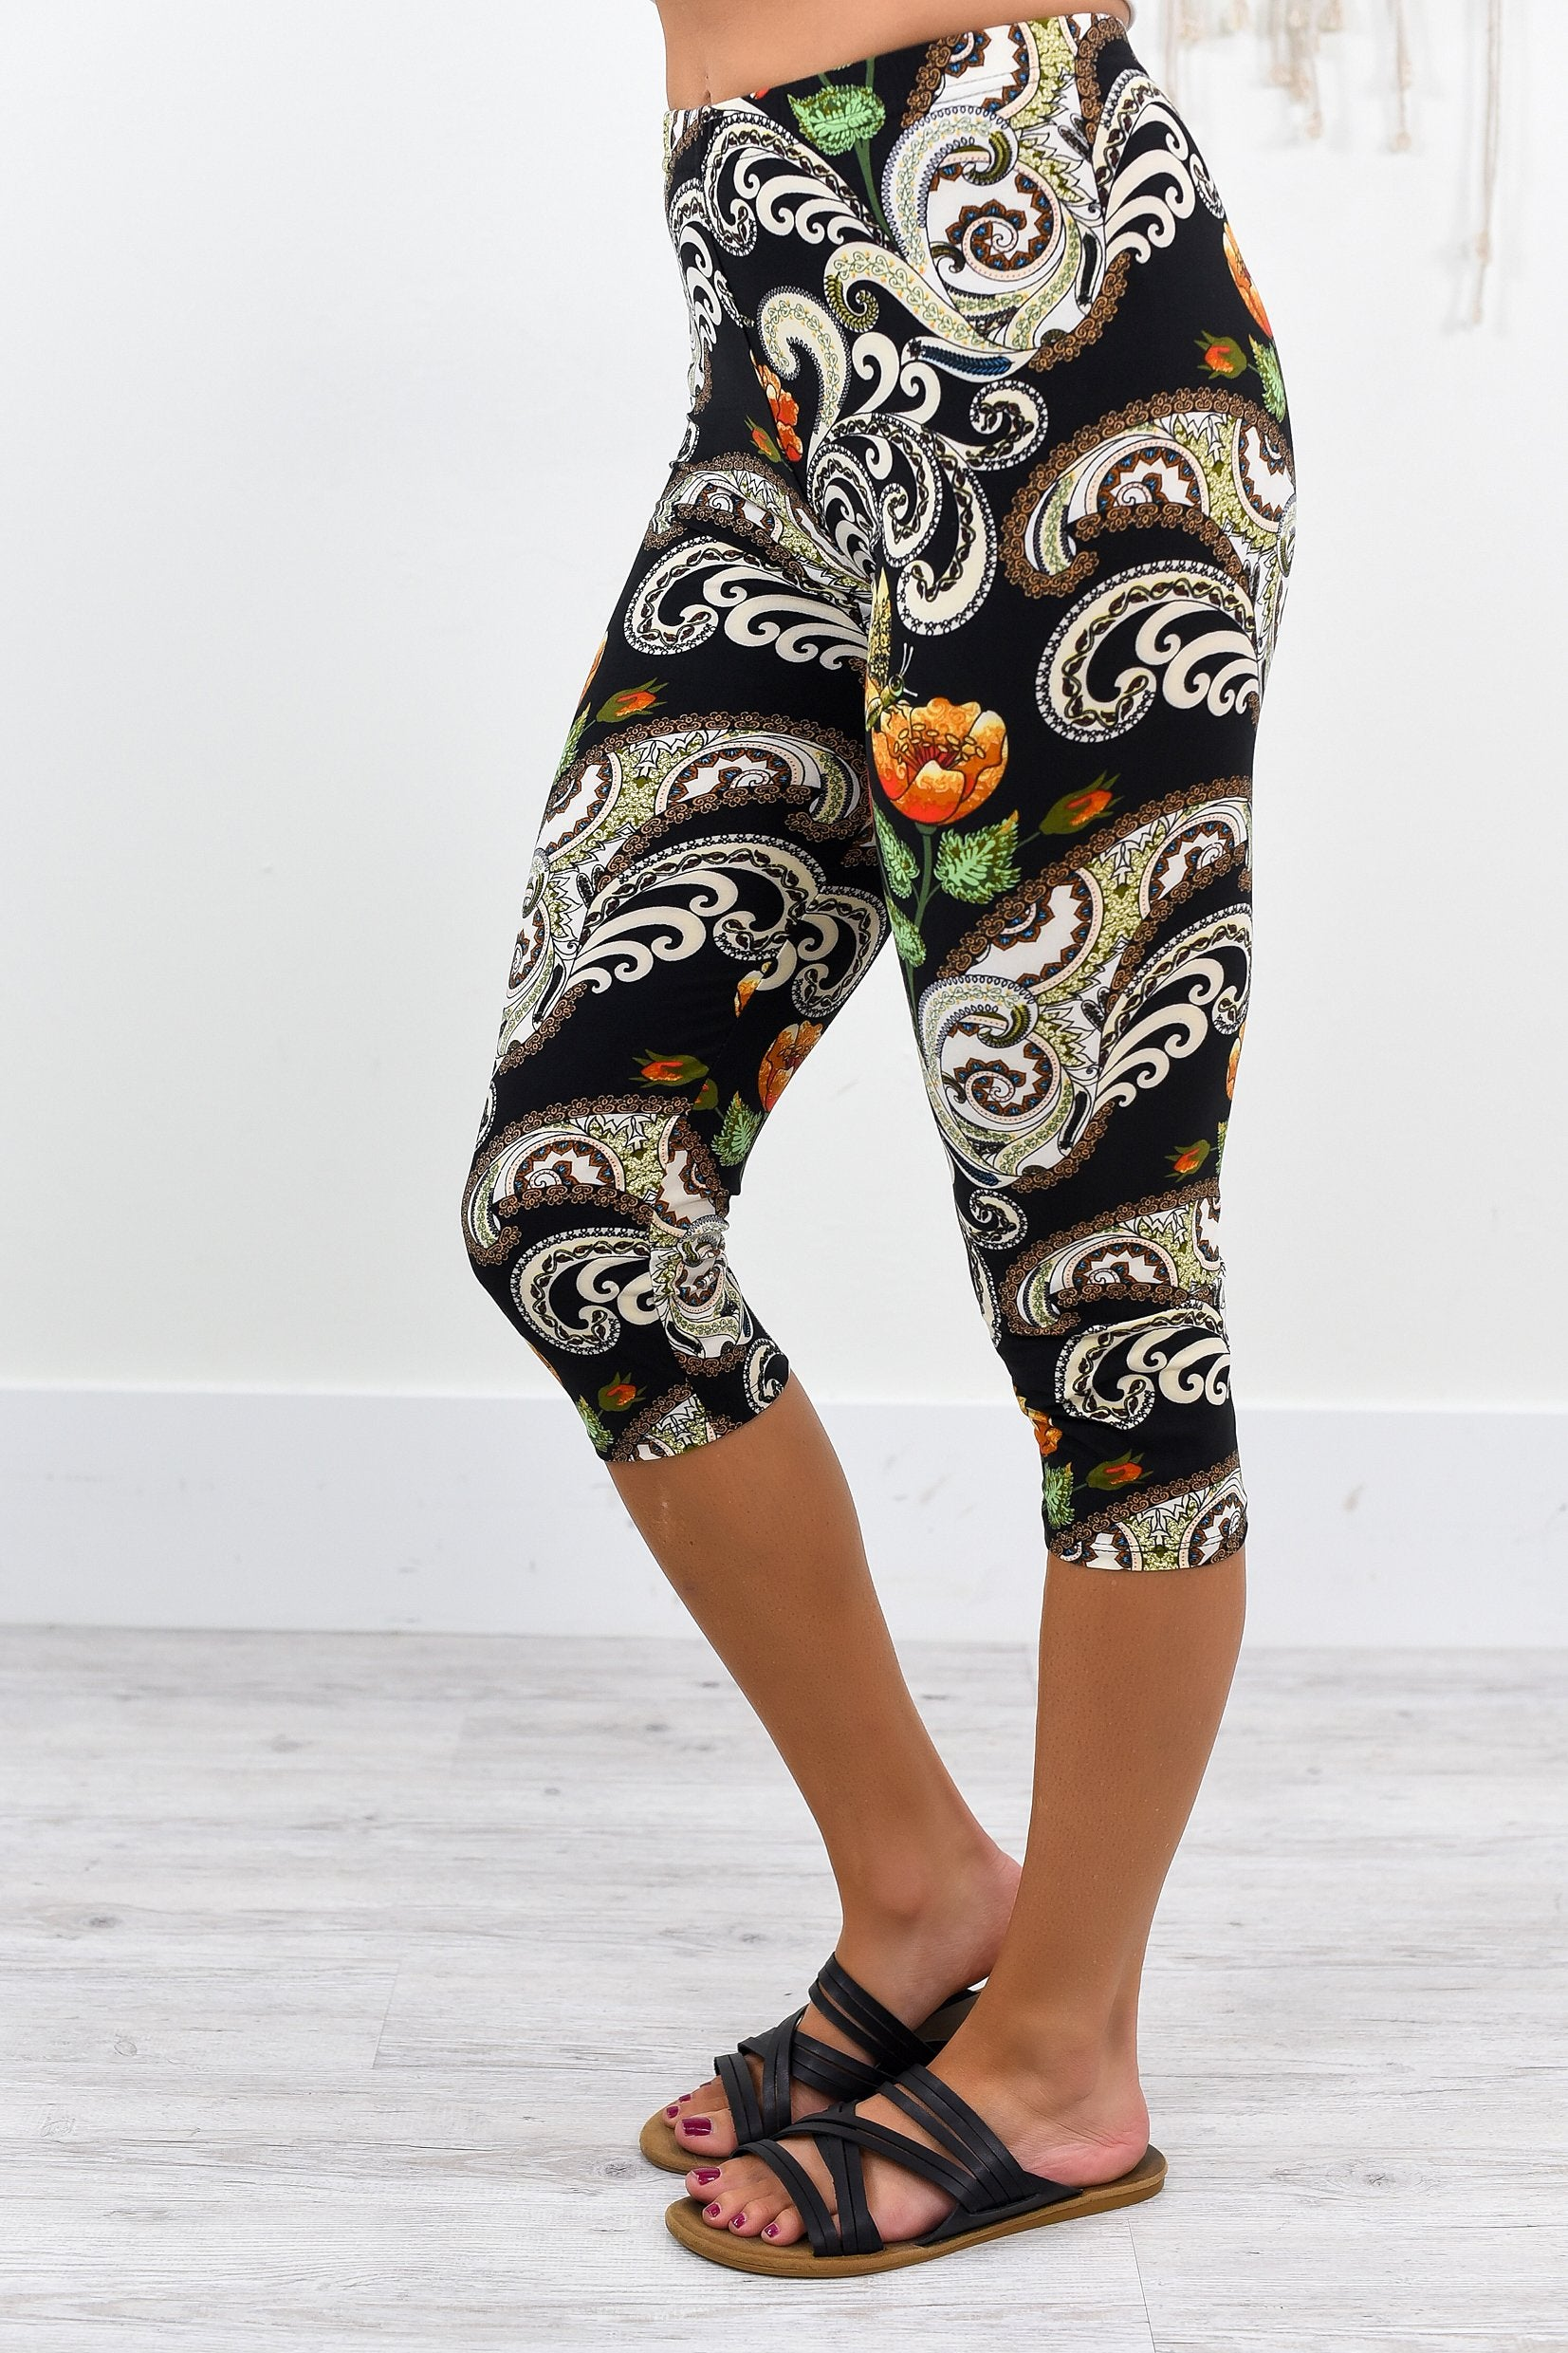 Black Paisley/Floral Capri Printed Leggings (Sizes 4-12) - LEG1904BK